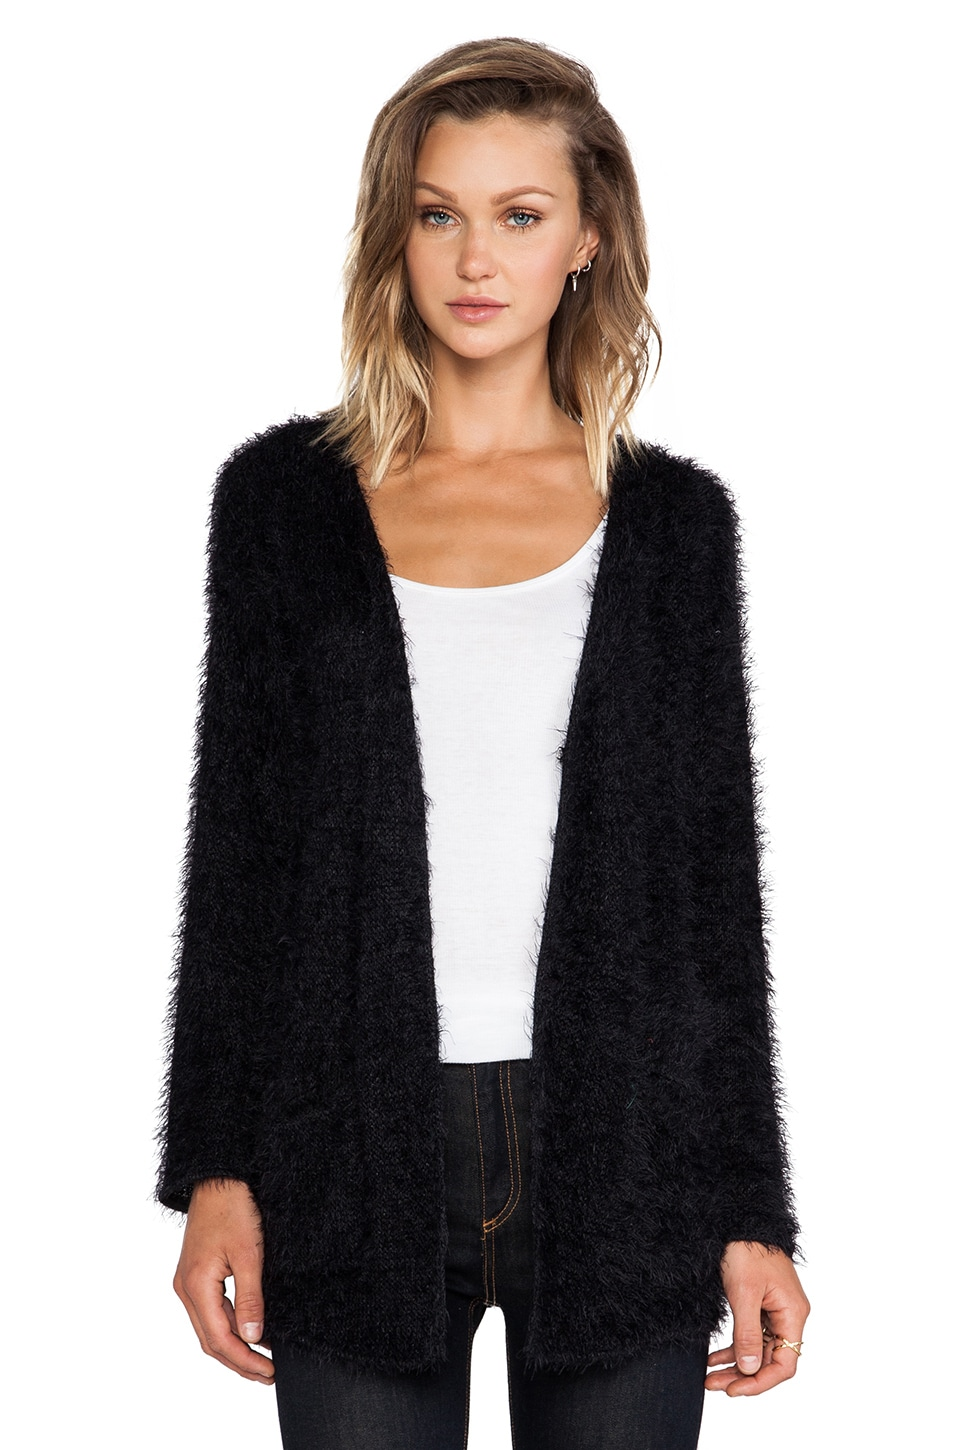 Ladakh Bamboozle Cardigan in Black